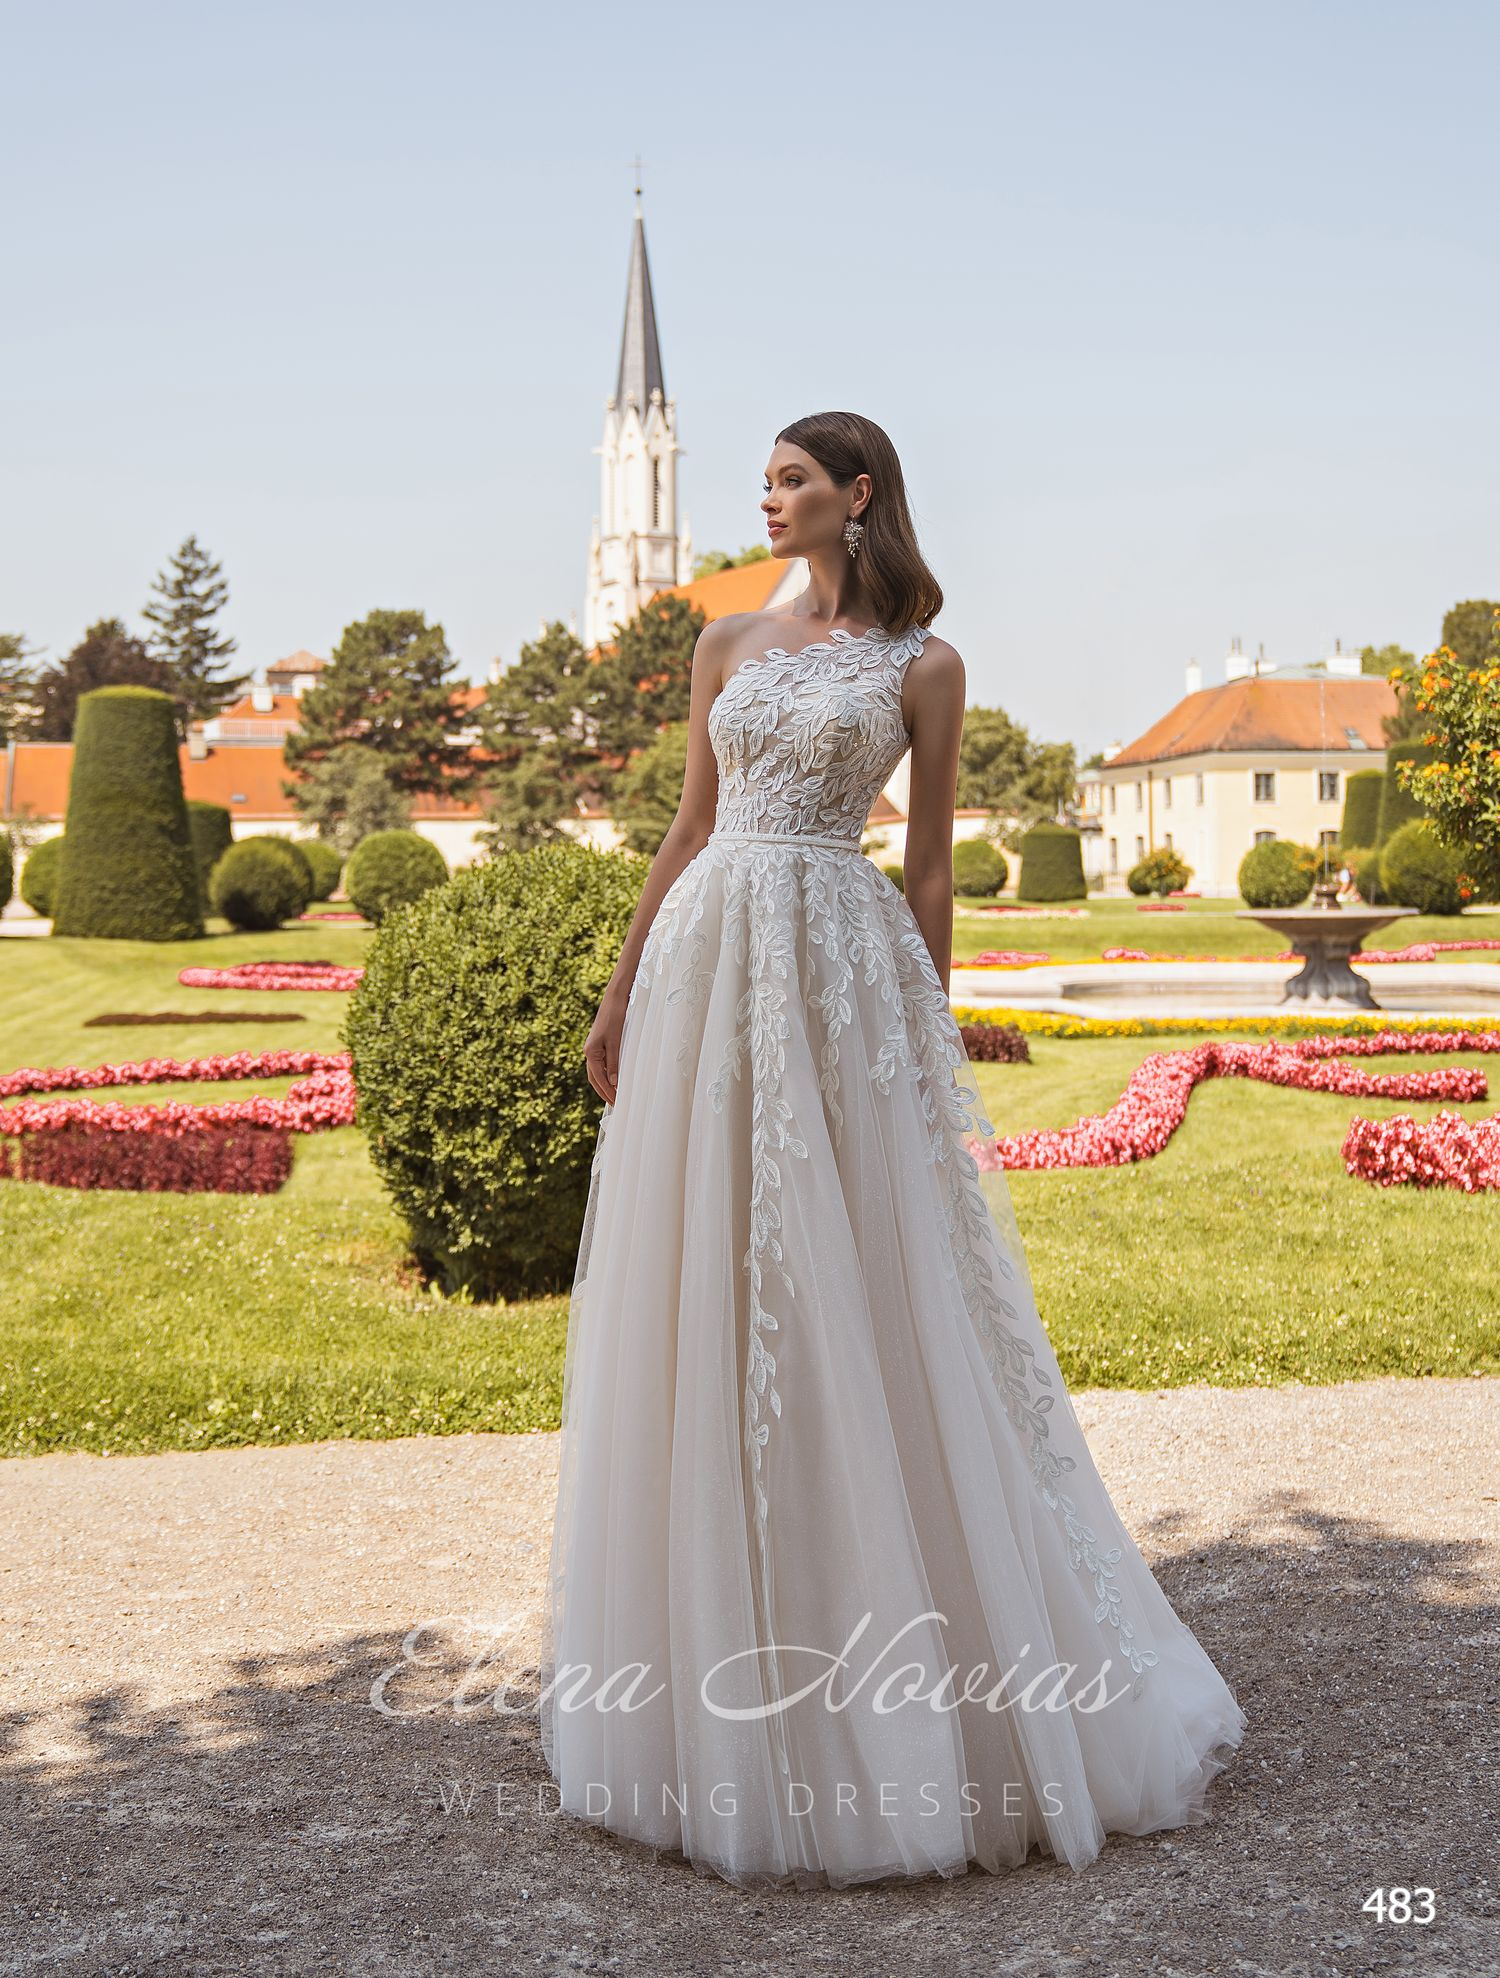 Wedding dresses 483